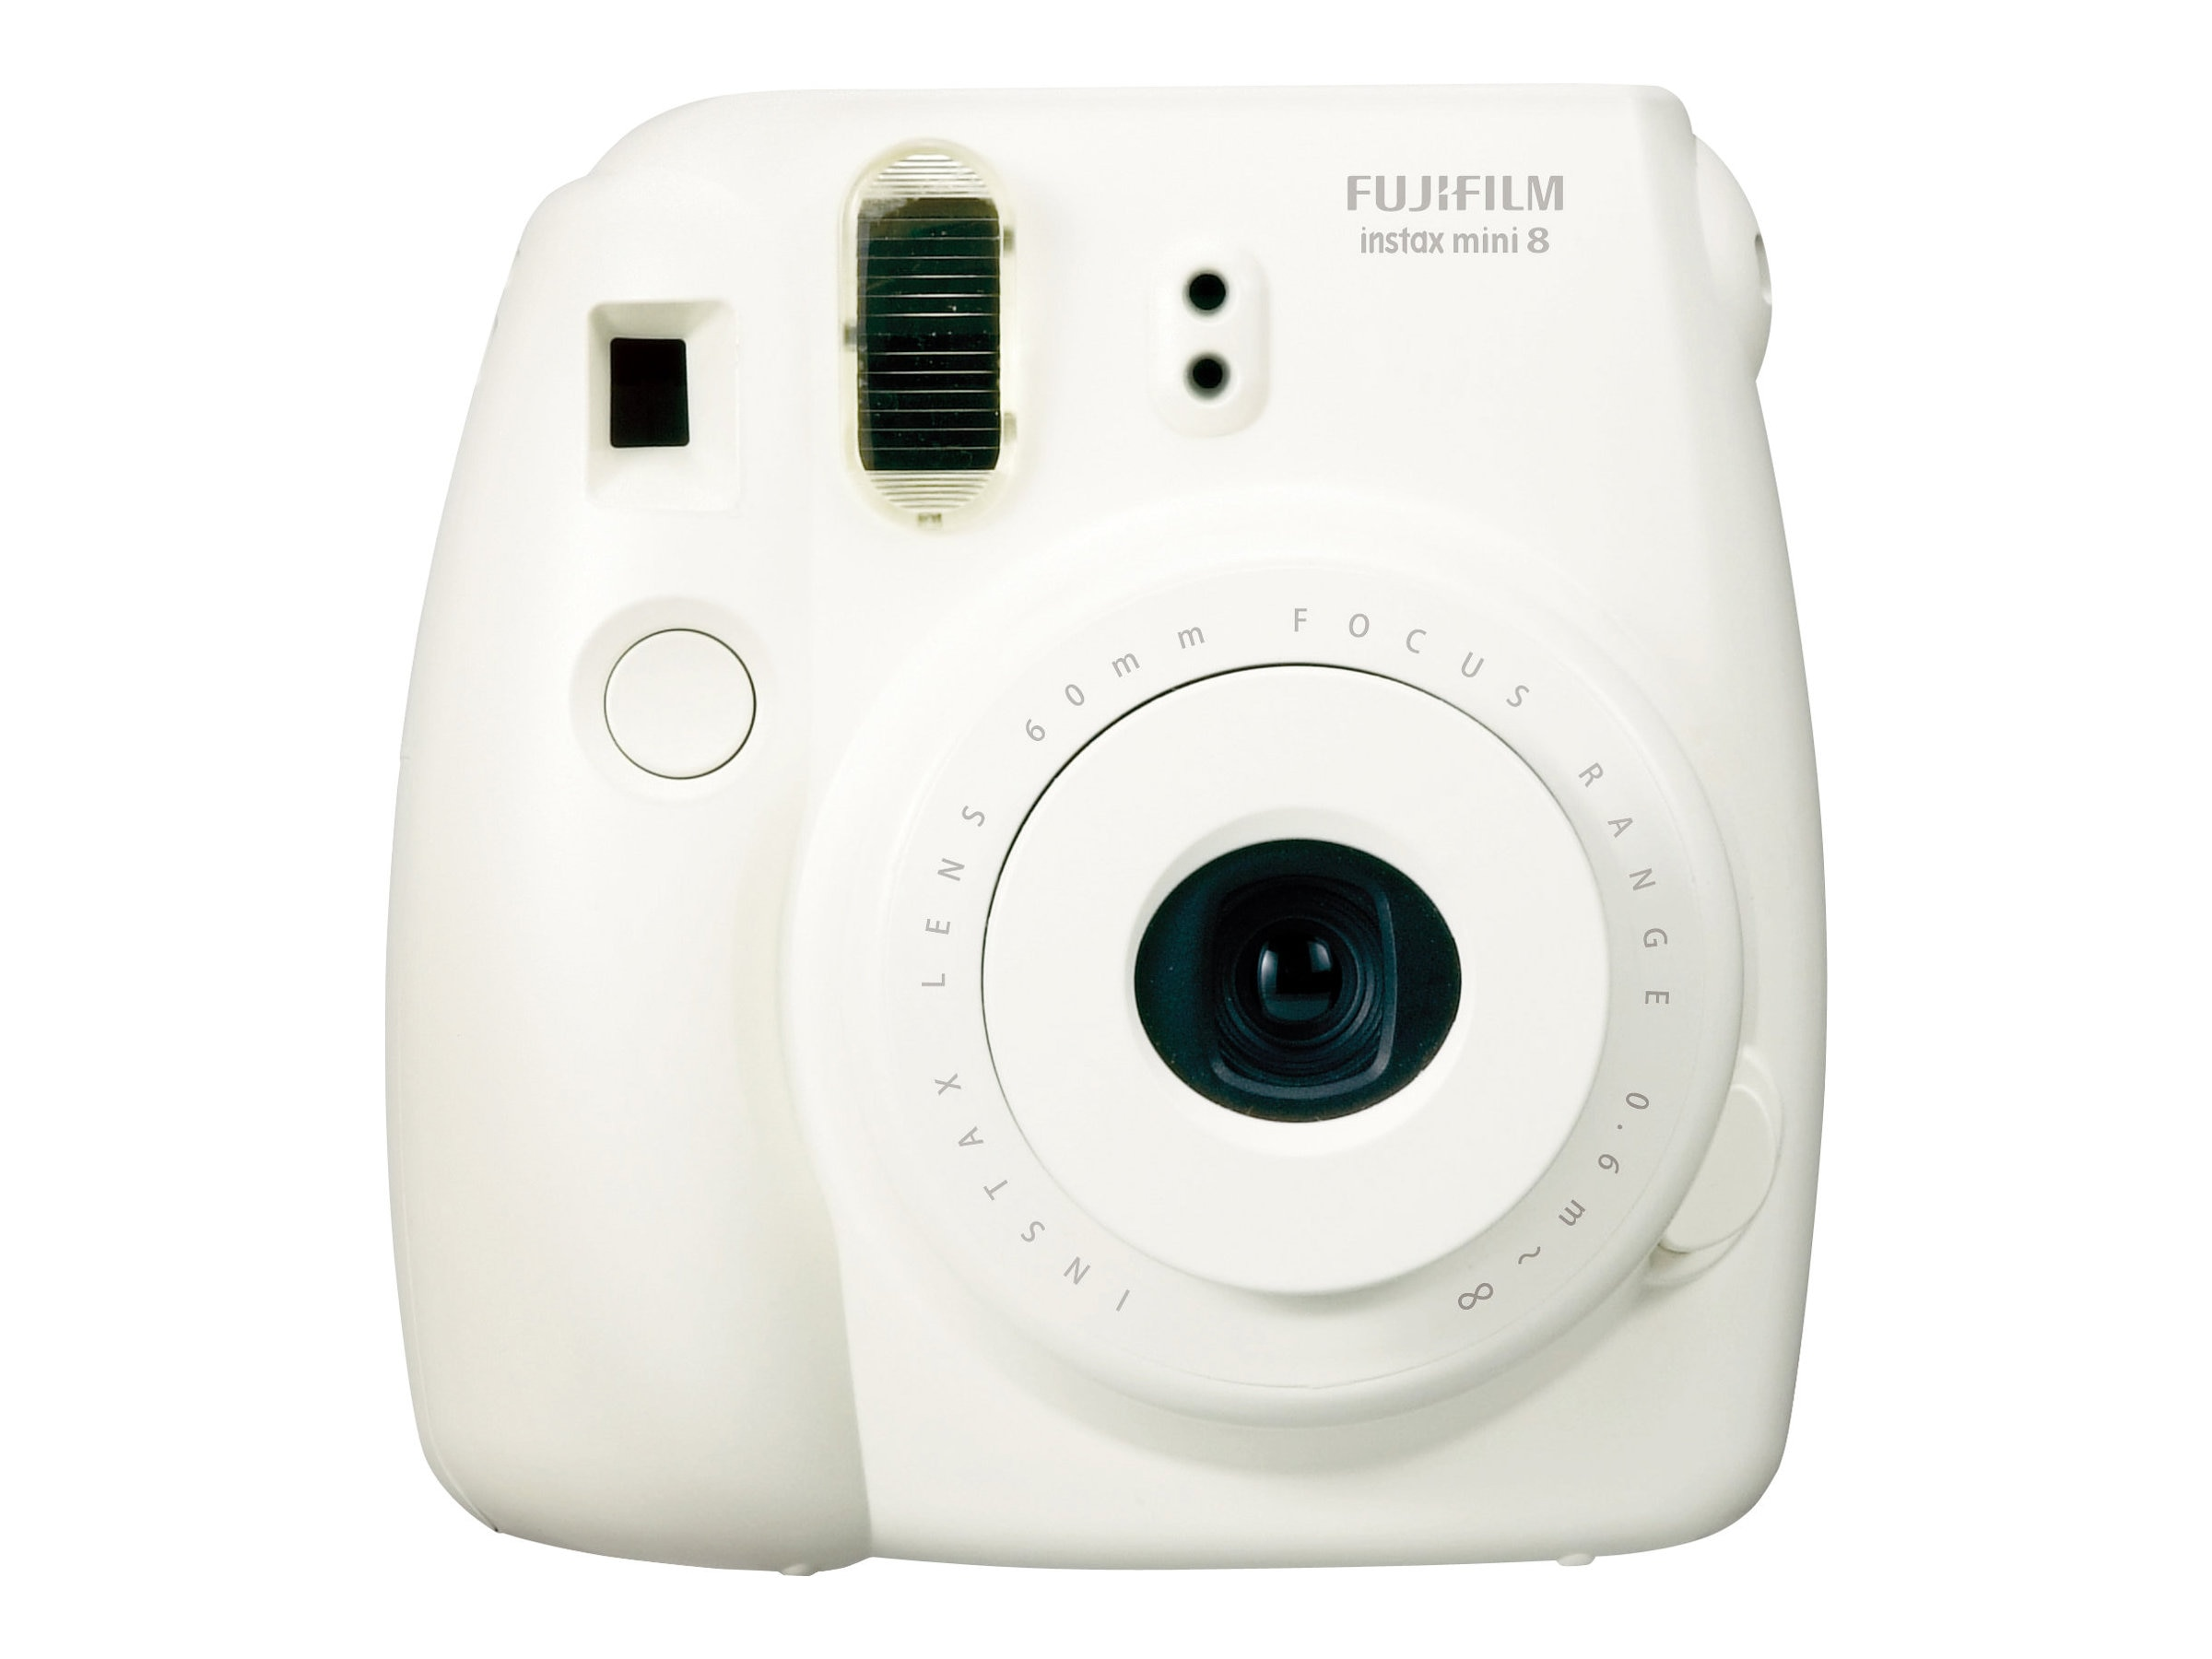 Fujifilm Instax Mini 8 Camera, White, 16273398, 15682163, Cameras - Film